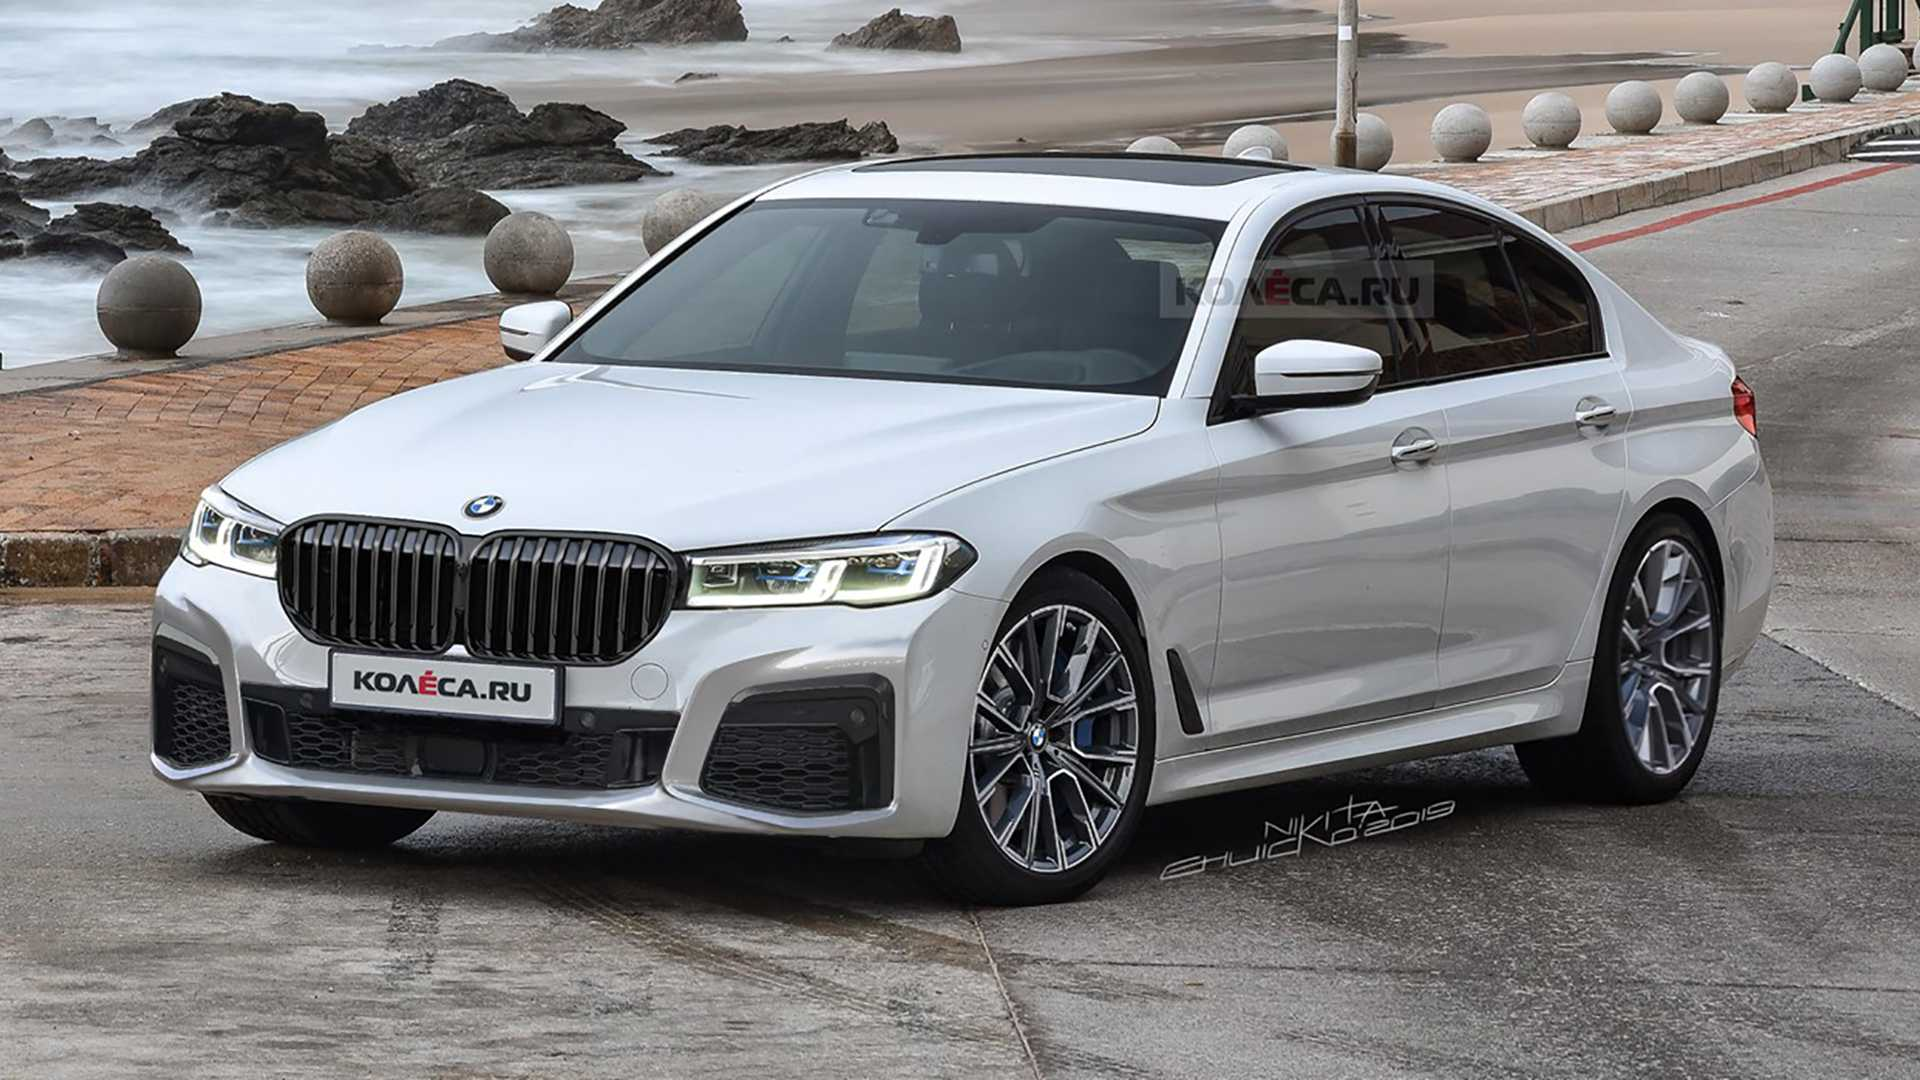 2020 BMW 5 Series Images